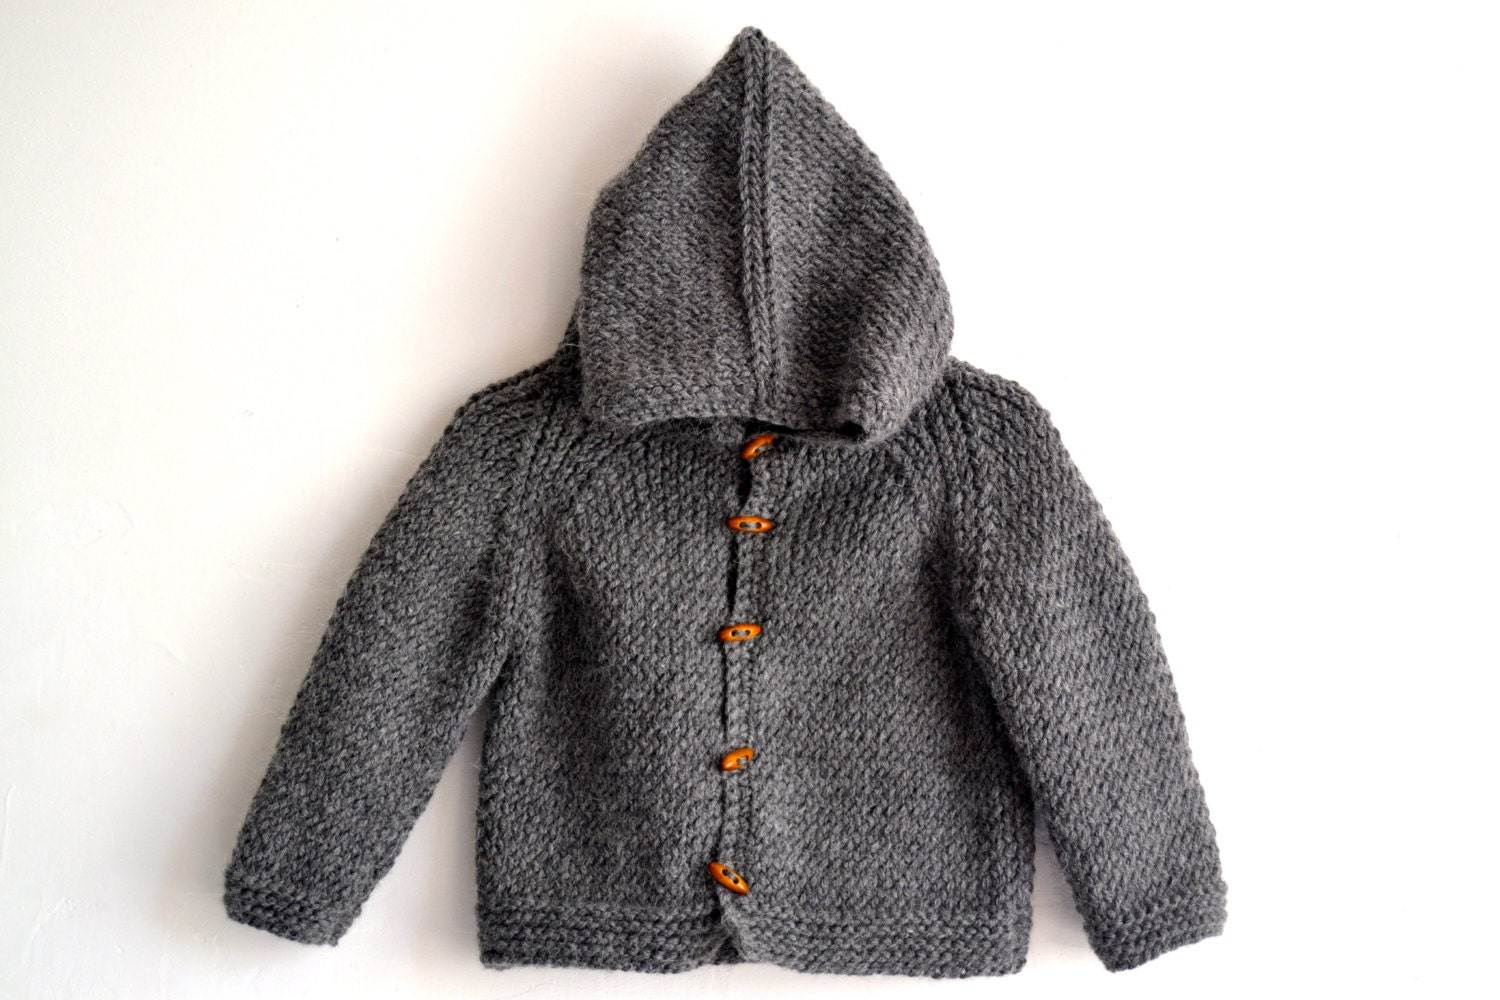 Miou Kids Hand-Knitted Clothing For Babies and Children. We create fair-trade, hand-knitted and hand-crocheted designer clothing for kids. The quality of our garments is unsurpassed and combines original designs, the highest level of craftsmanship, and the best eco-friendly baby alpaca wool and organic cotton available.